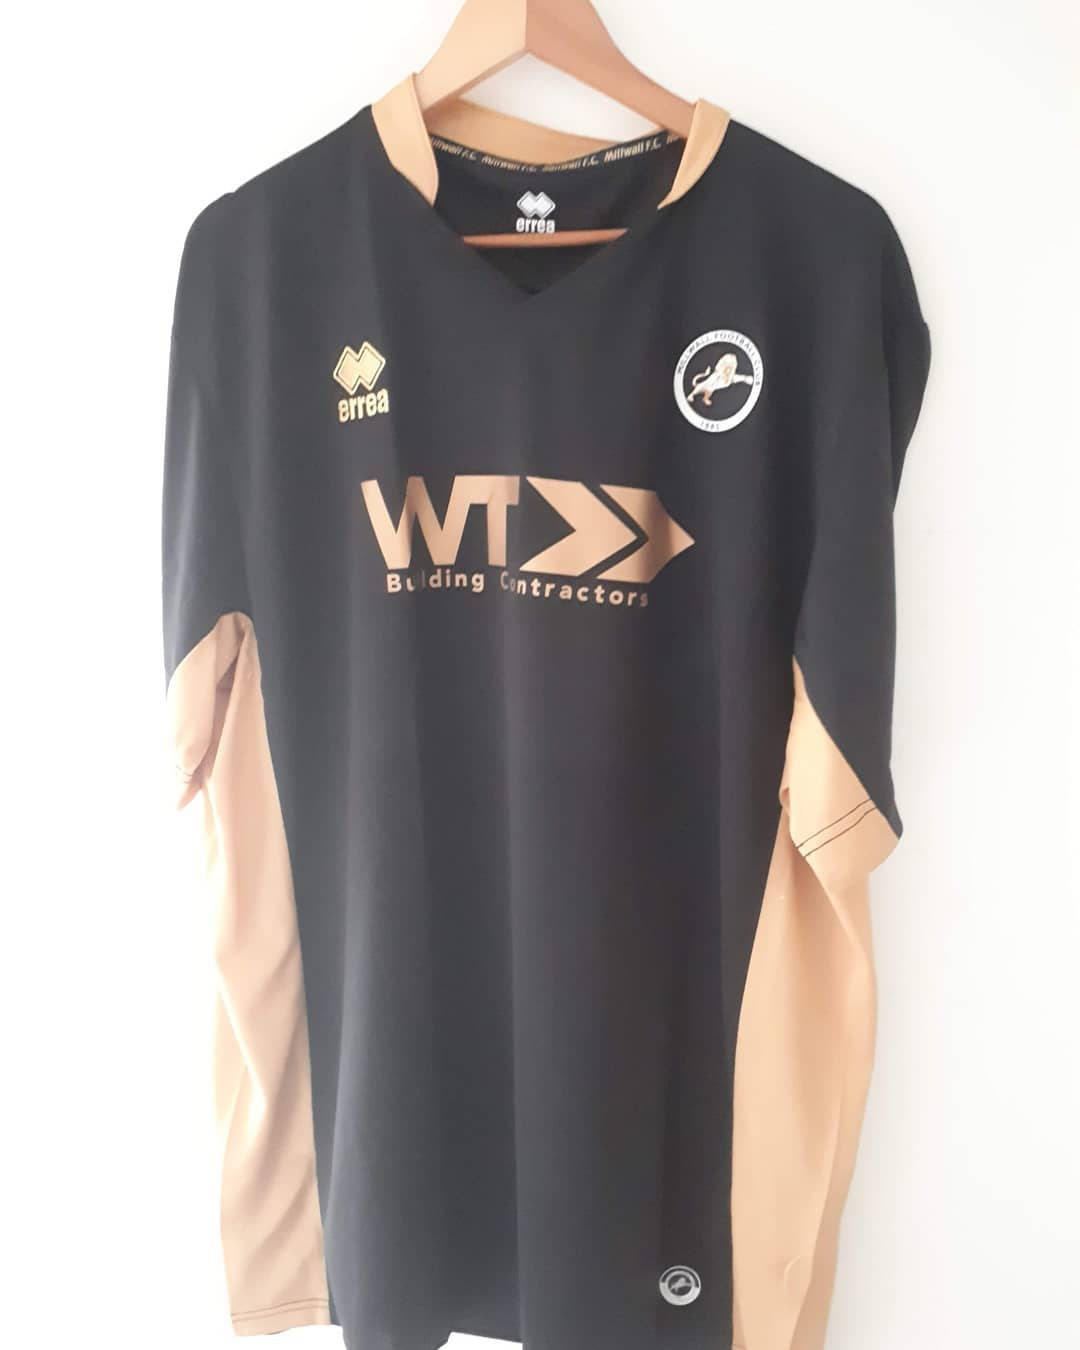 Millwall Third 2016/2017 Football Shirt. Club Football Shirts.